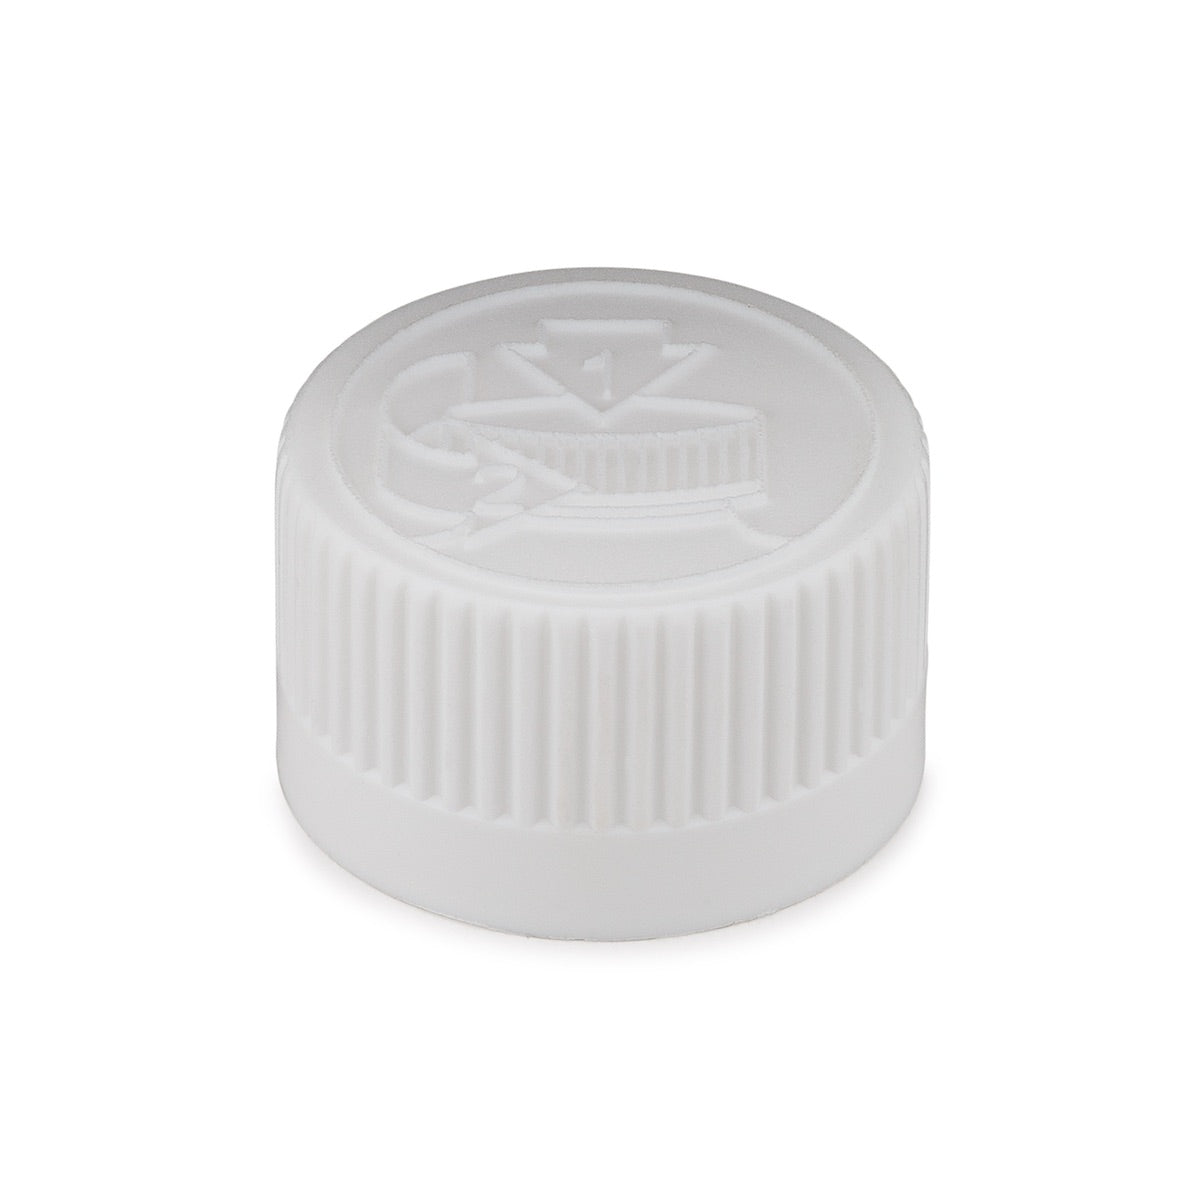 20-400 Child Resistant Screw Cap